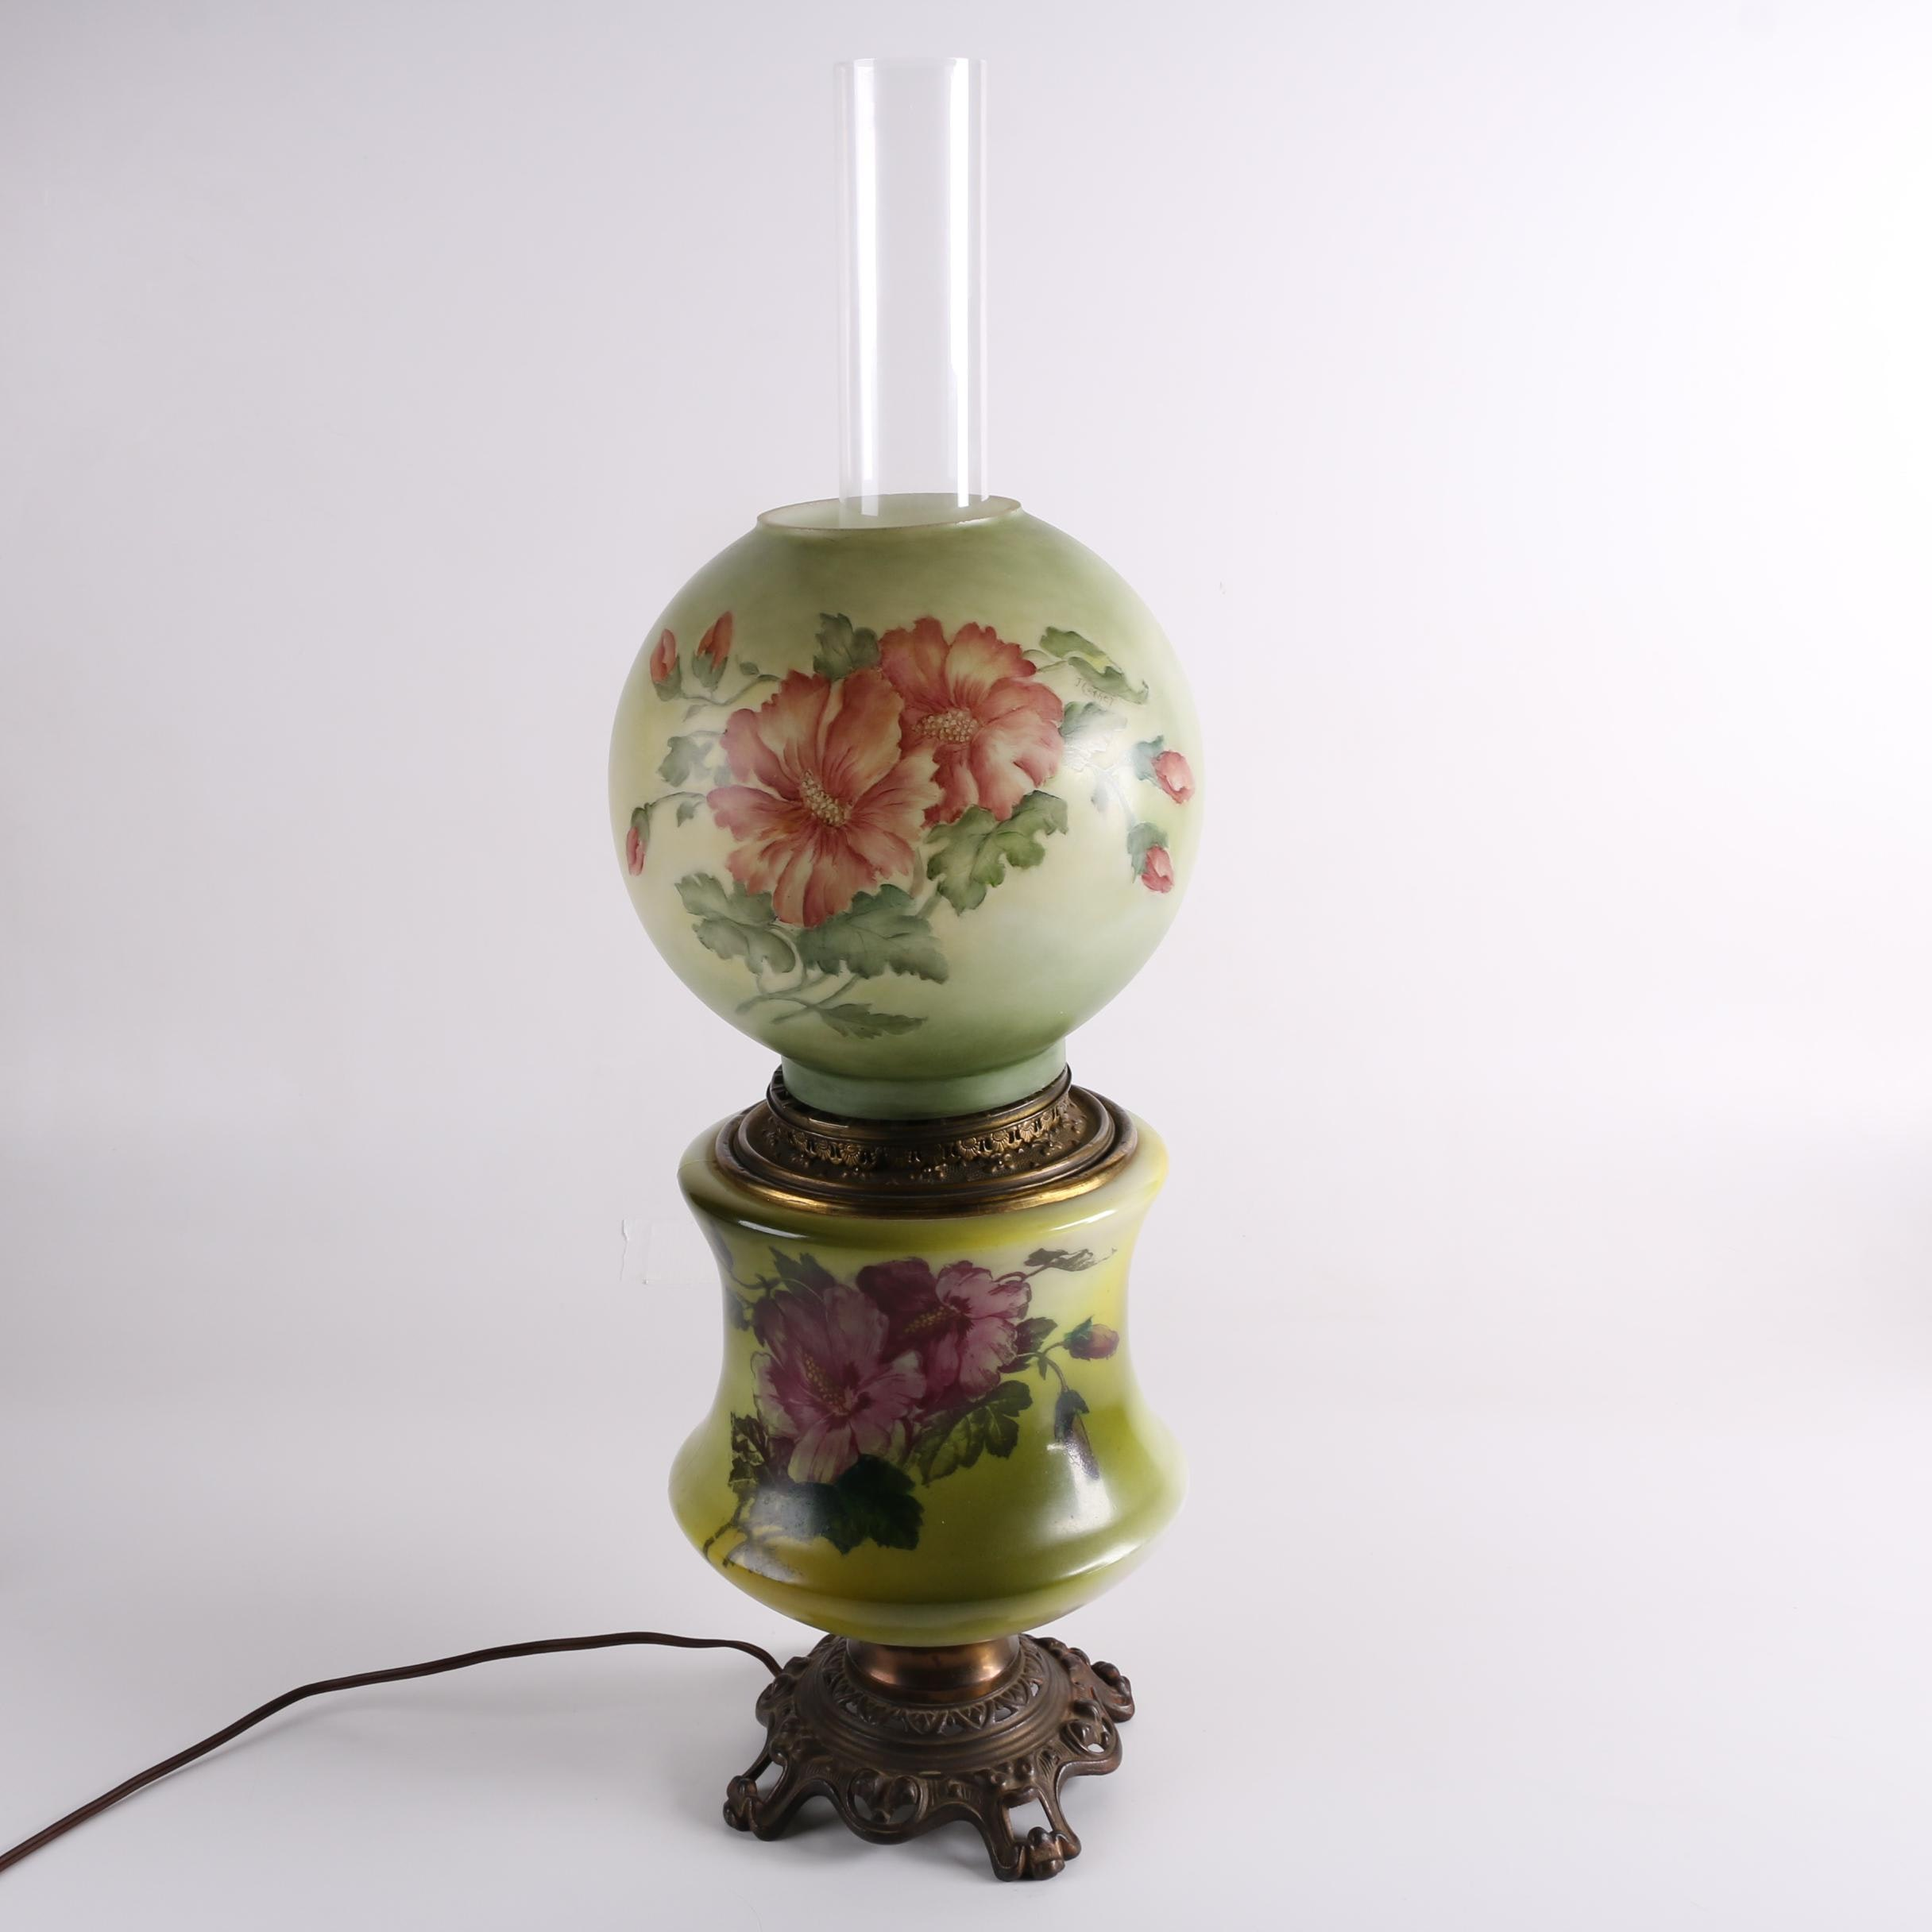 Vintage Parlor Lamp Featuring Signed Hand-Painted Ball Globe